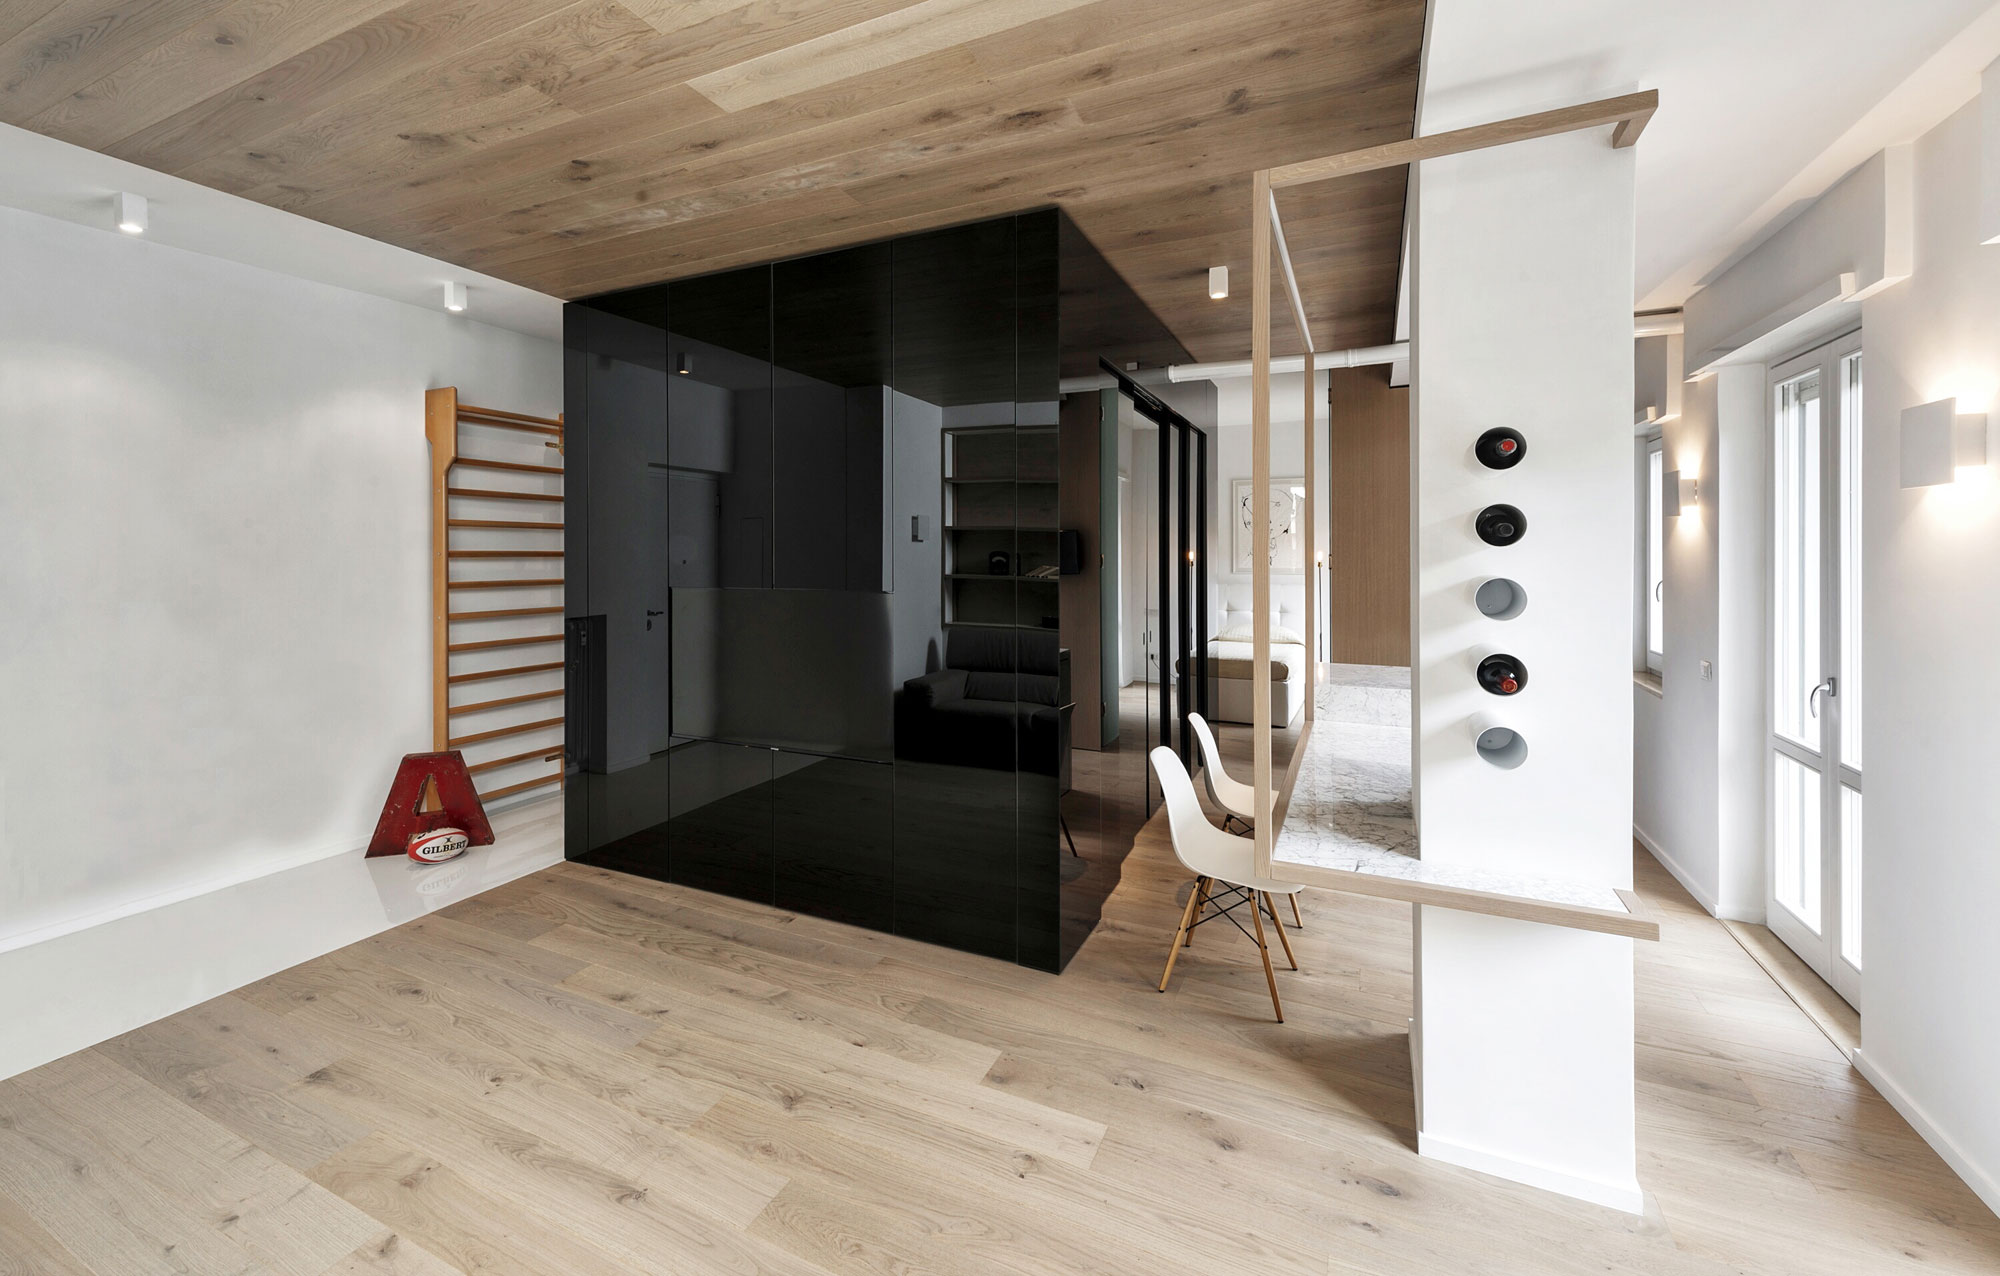 Cube House by Noses Architects